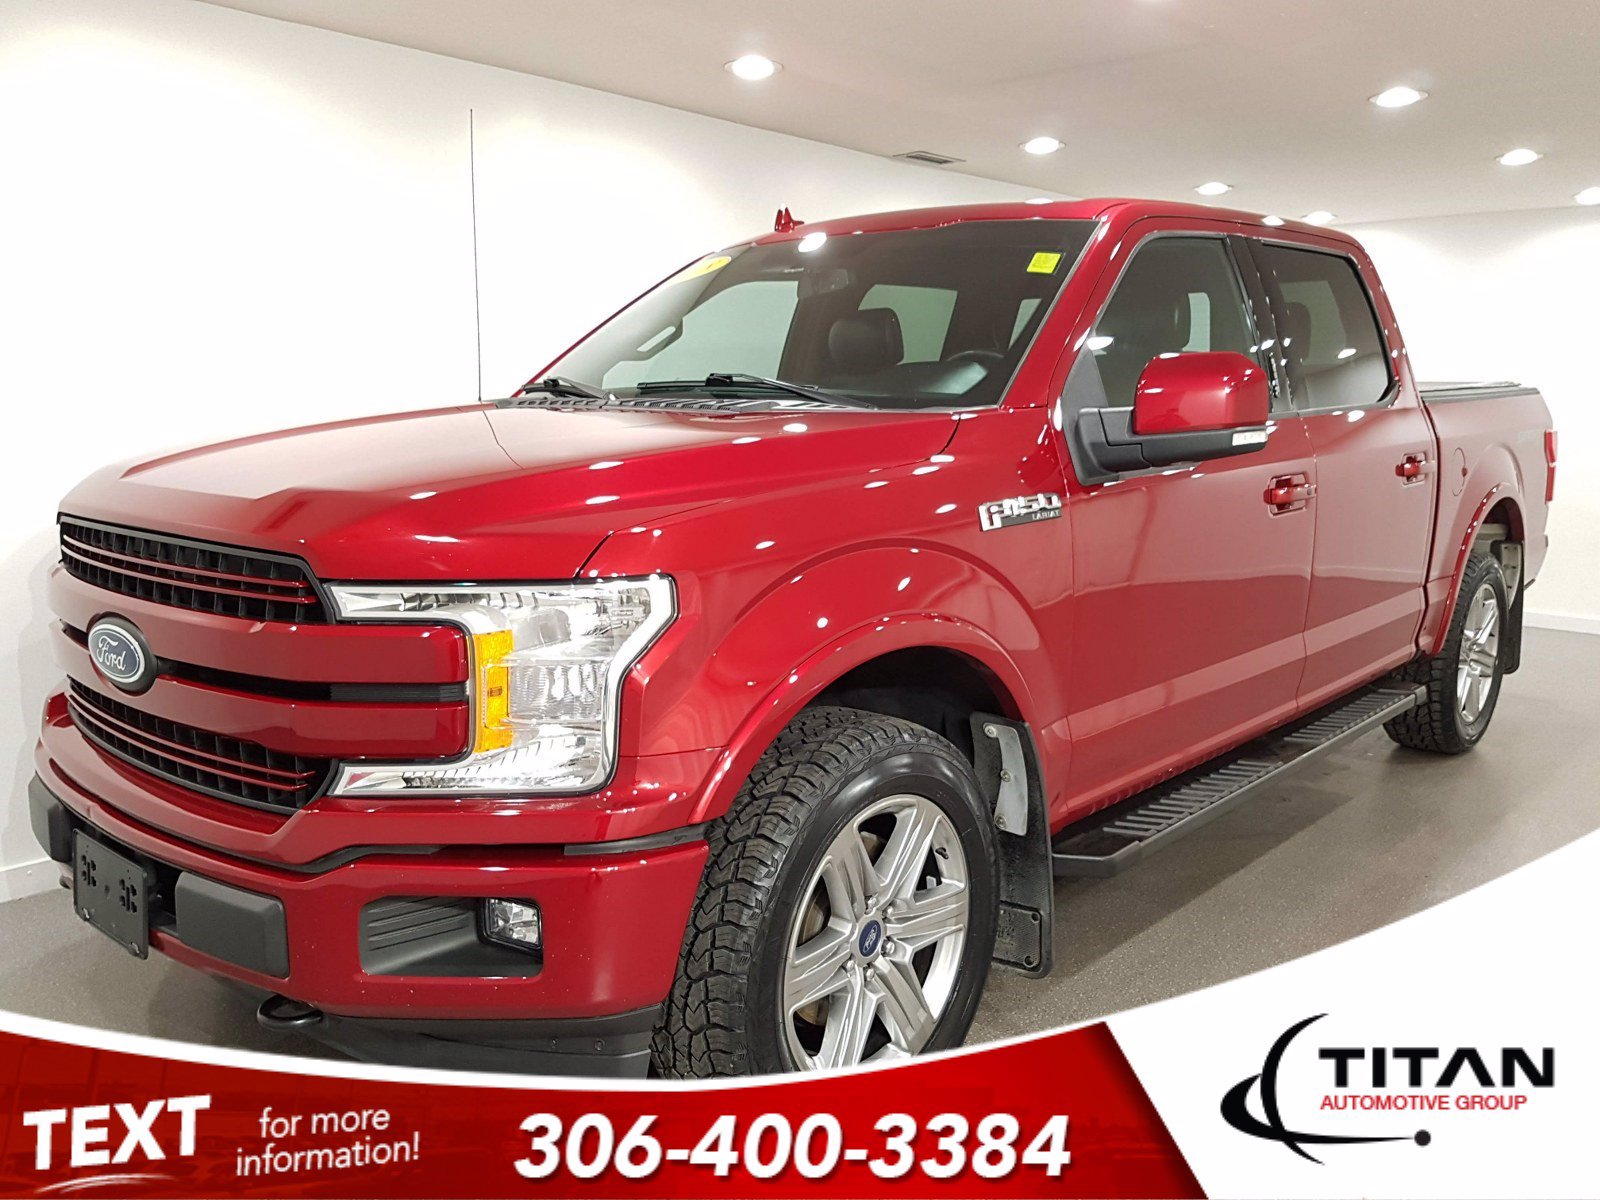 Pre-Owned 2018 Ford F-150 Lariat Sport | 4x4 | V6 | Ecoboost | CAM | Leather | NAV | B & O Audio | Pano Sunroof